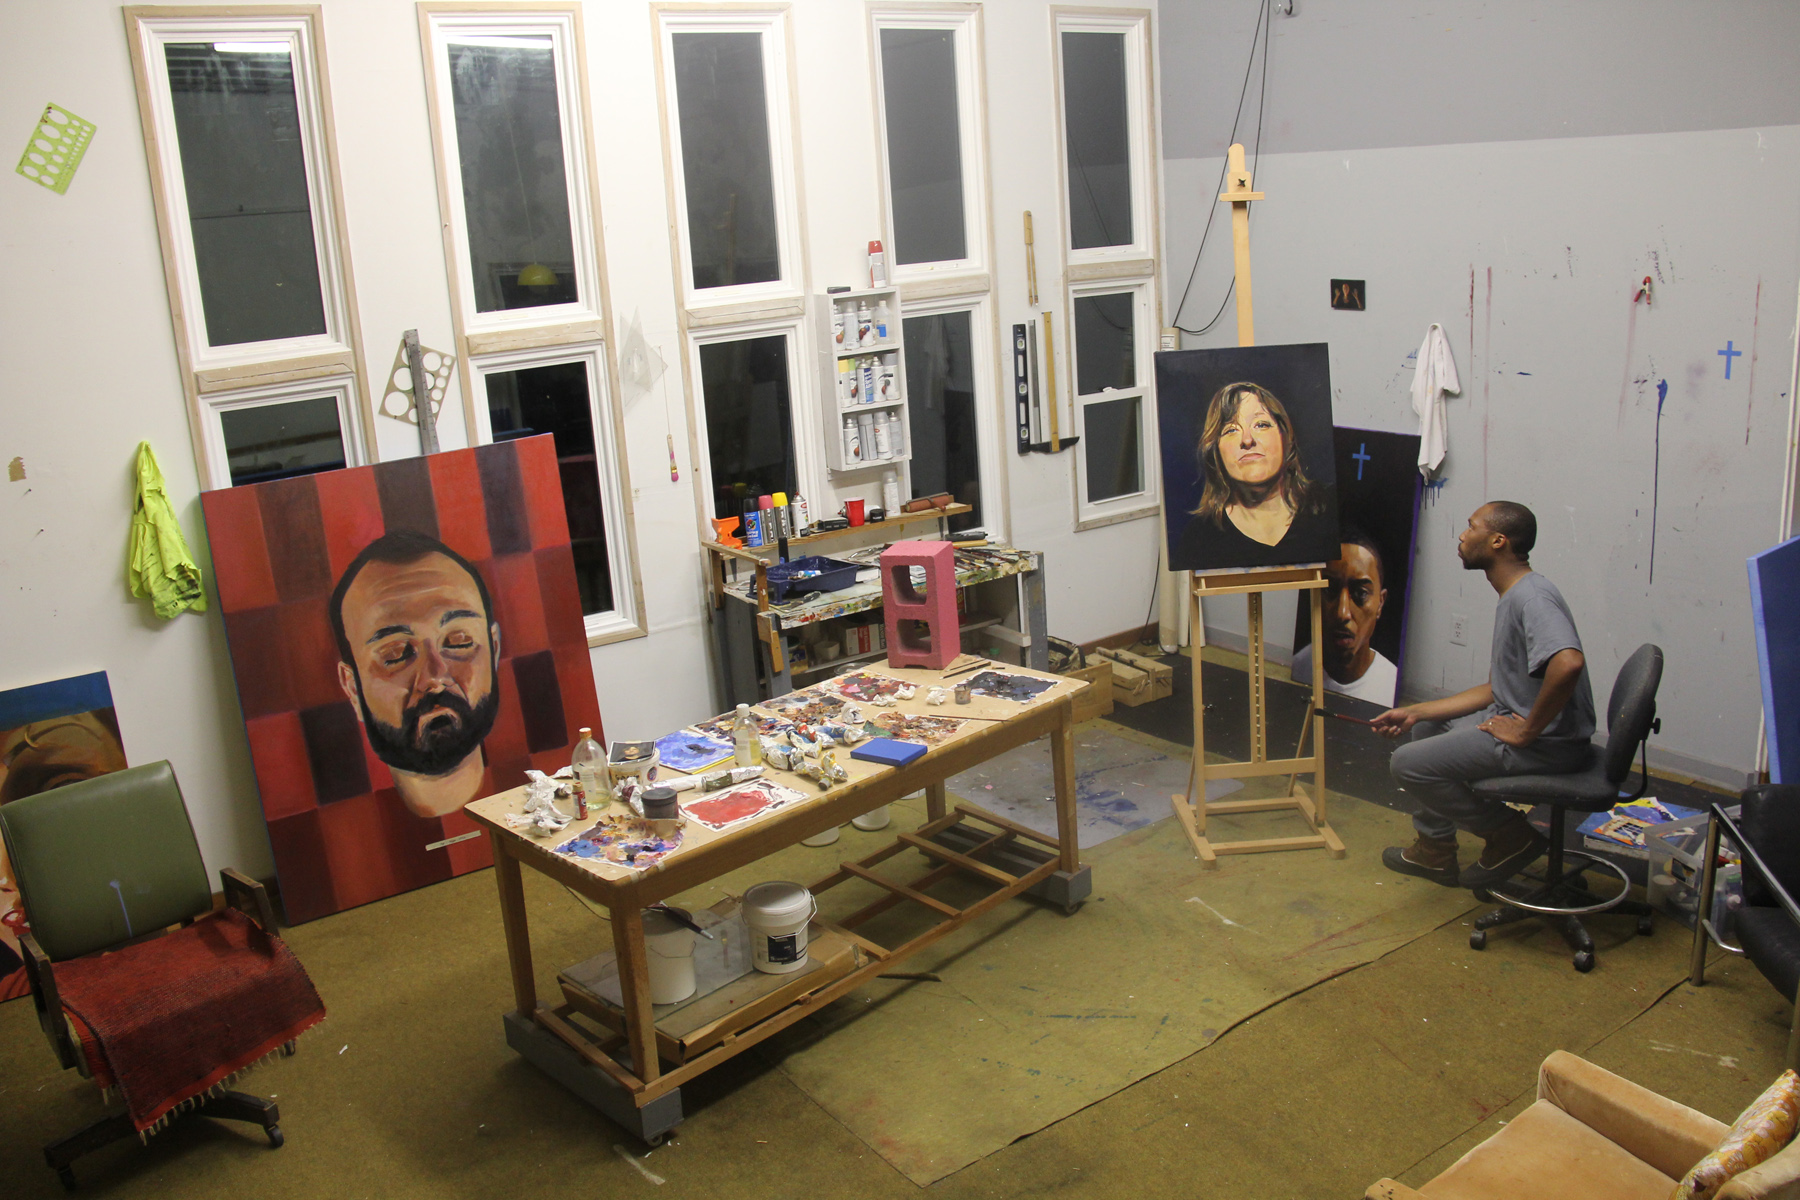 Studio Visit with William Paul Thomas. *Studio visit is included in the purchase of his painting Some Mexican Dude. 0.00